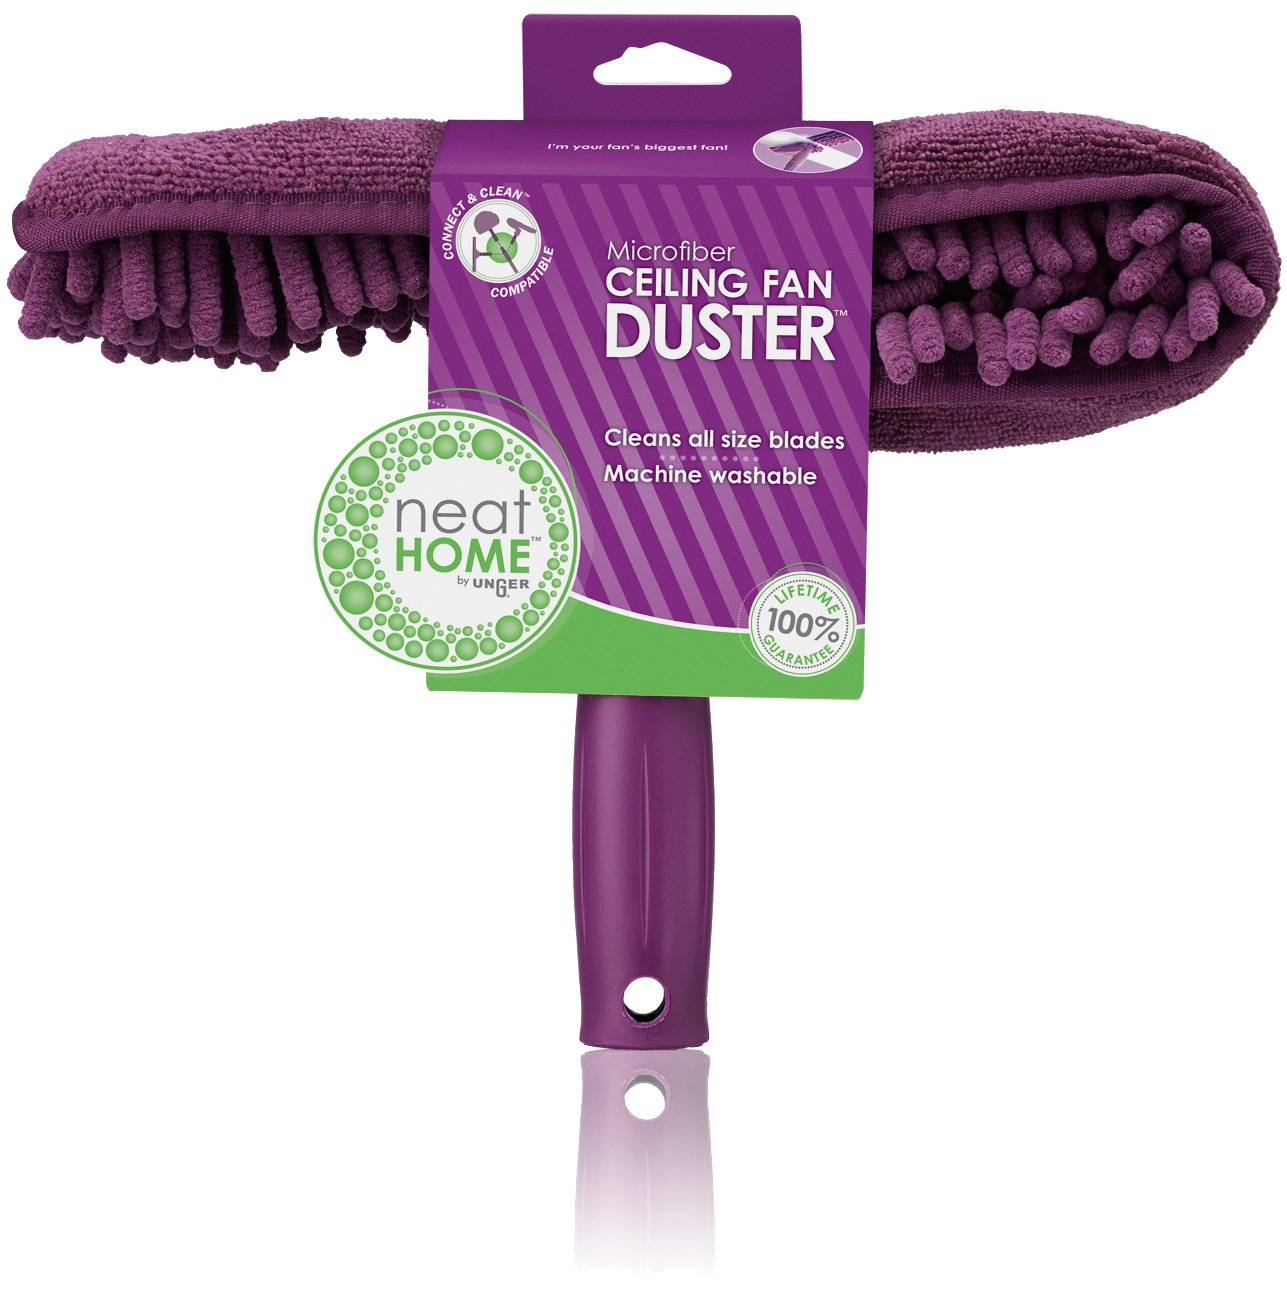 Unger neatHome Ceiling Fan Duster